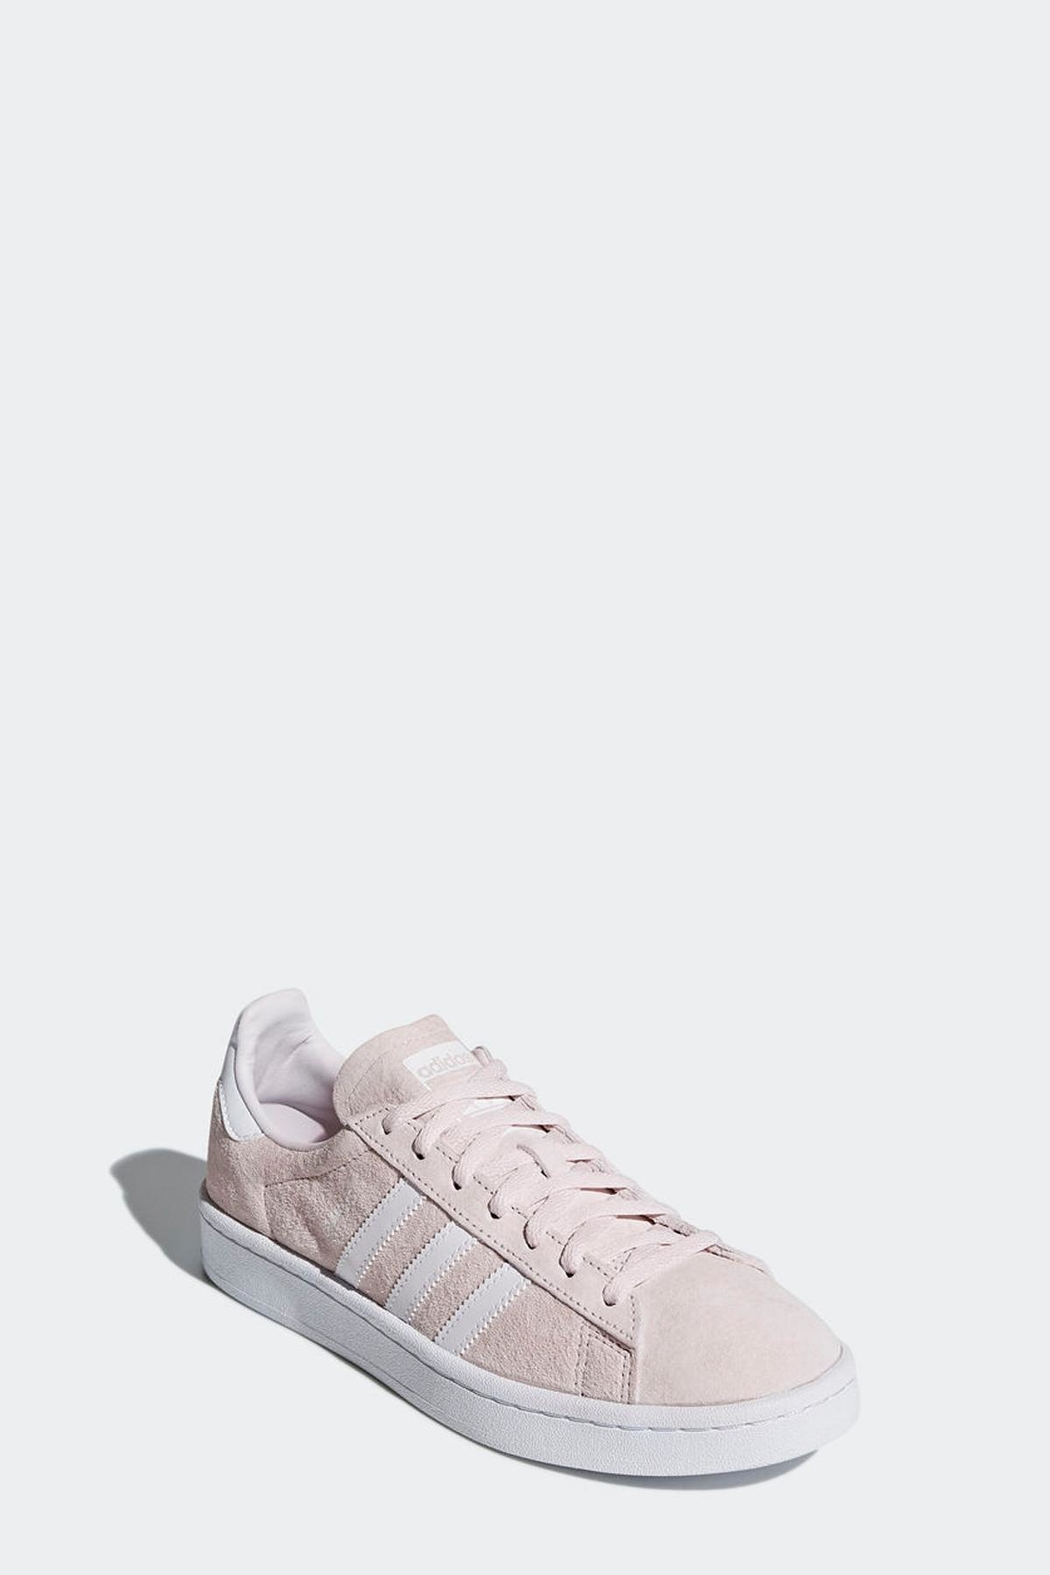 adidas Campus Shoes - Side Cropped Image